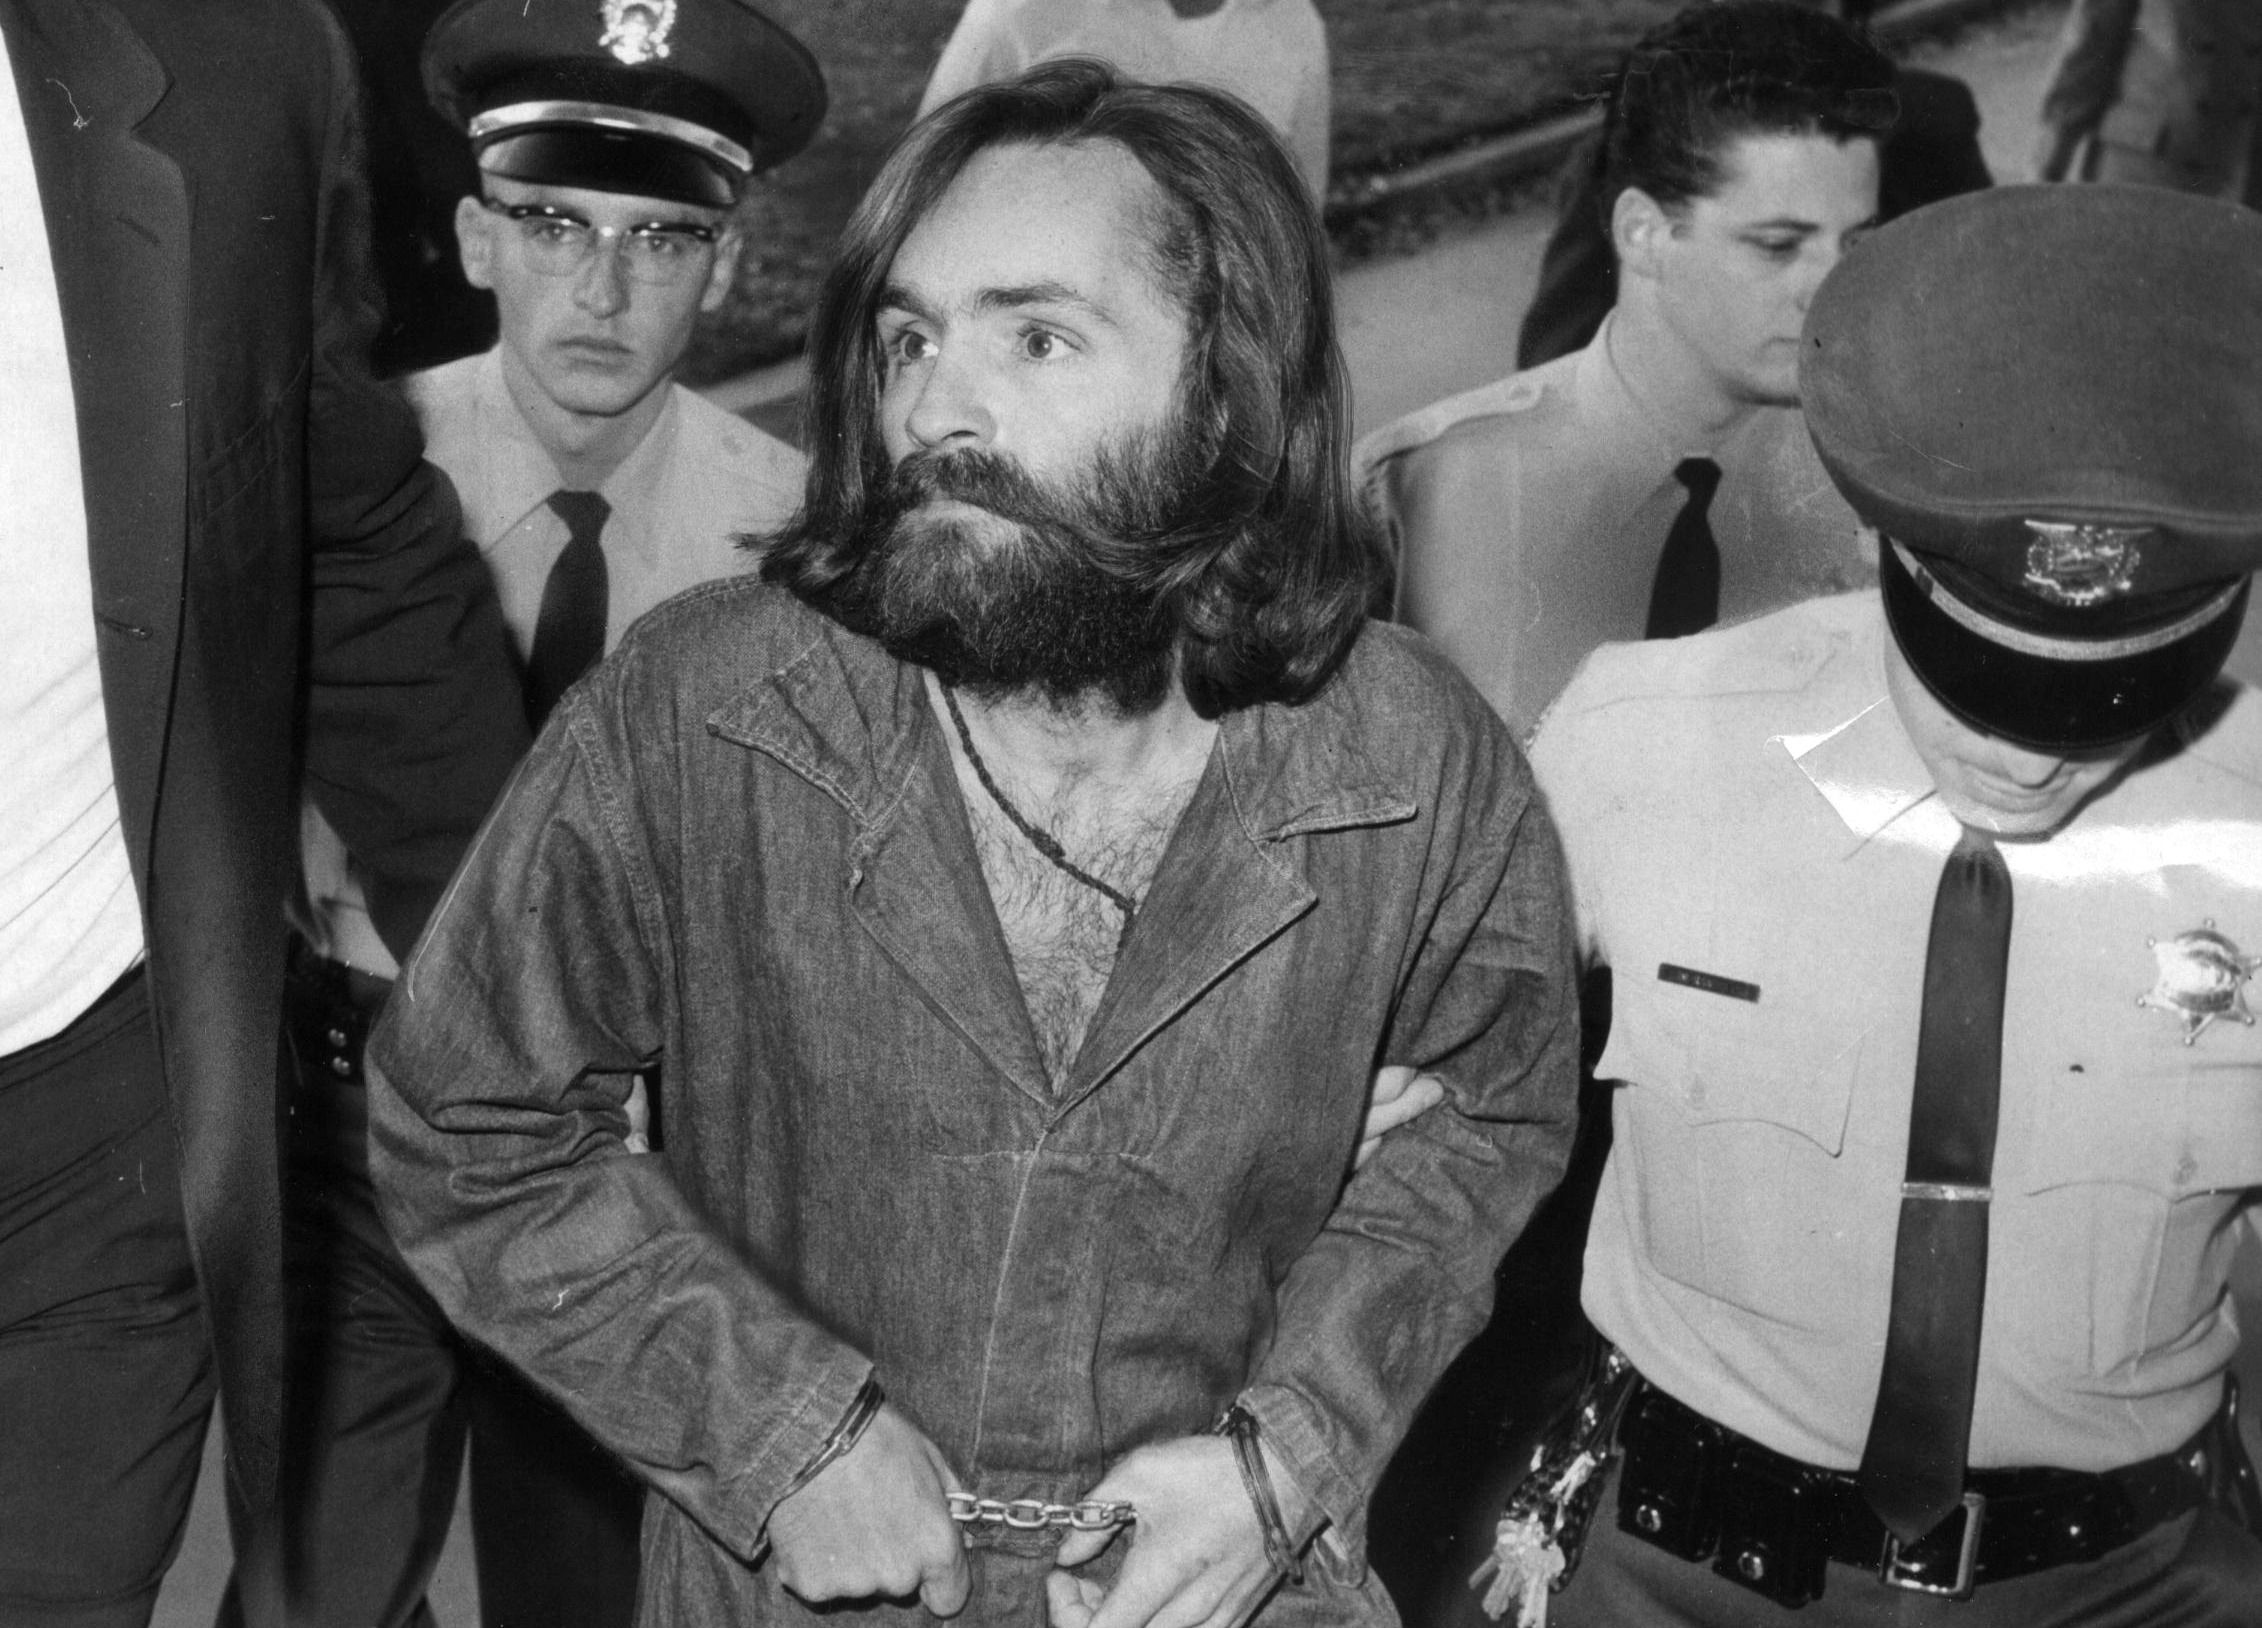 Charles Manson: The True Story of the Manson Family and the